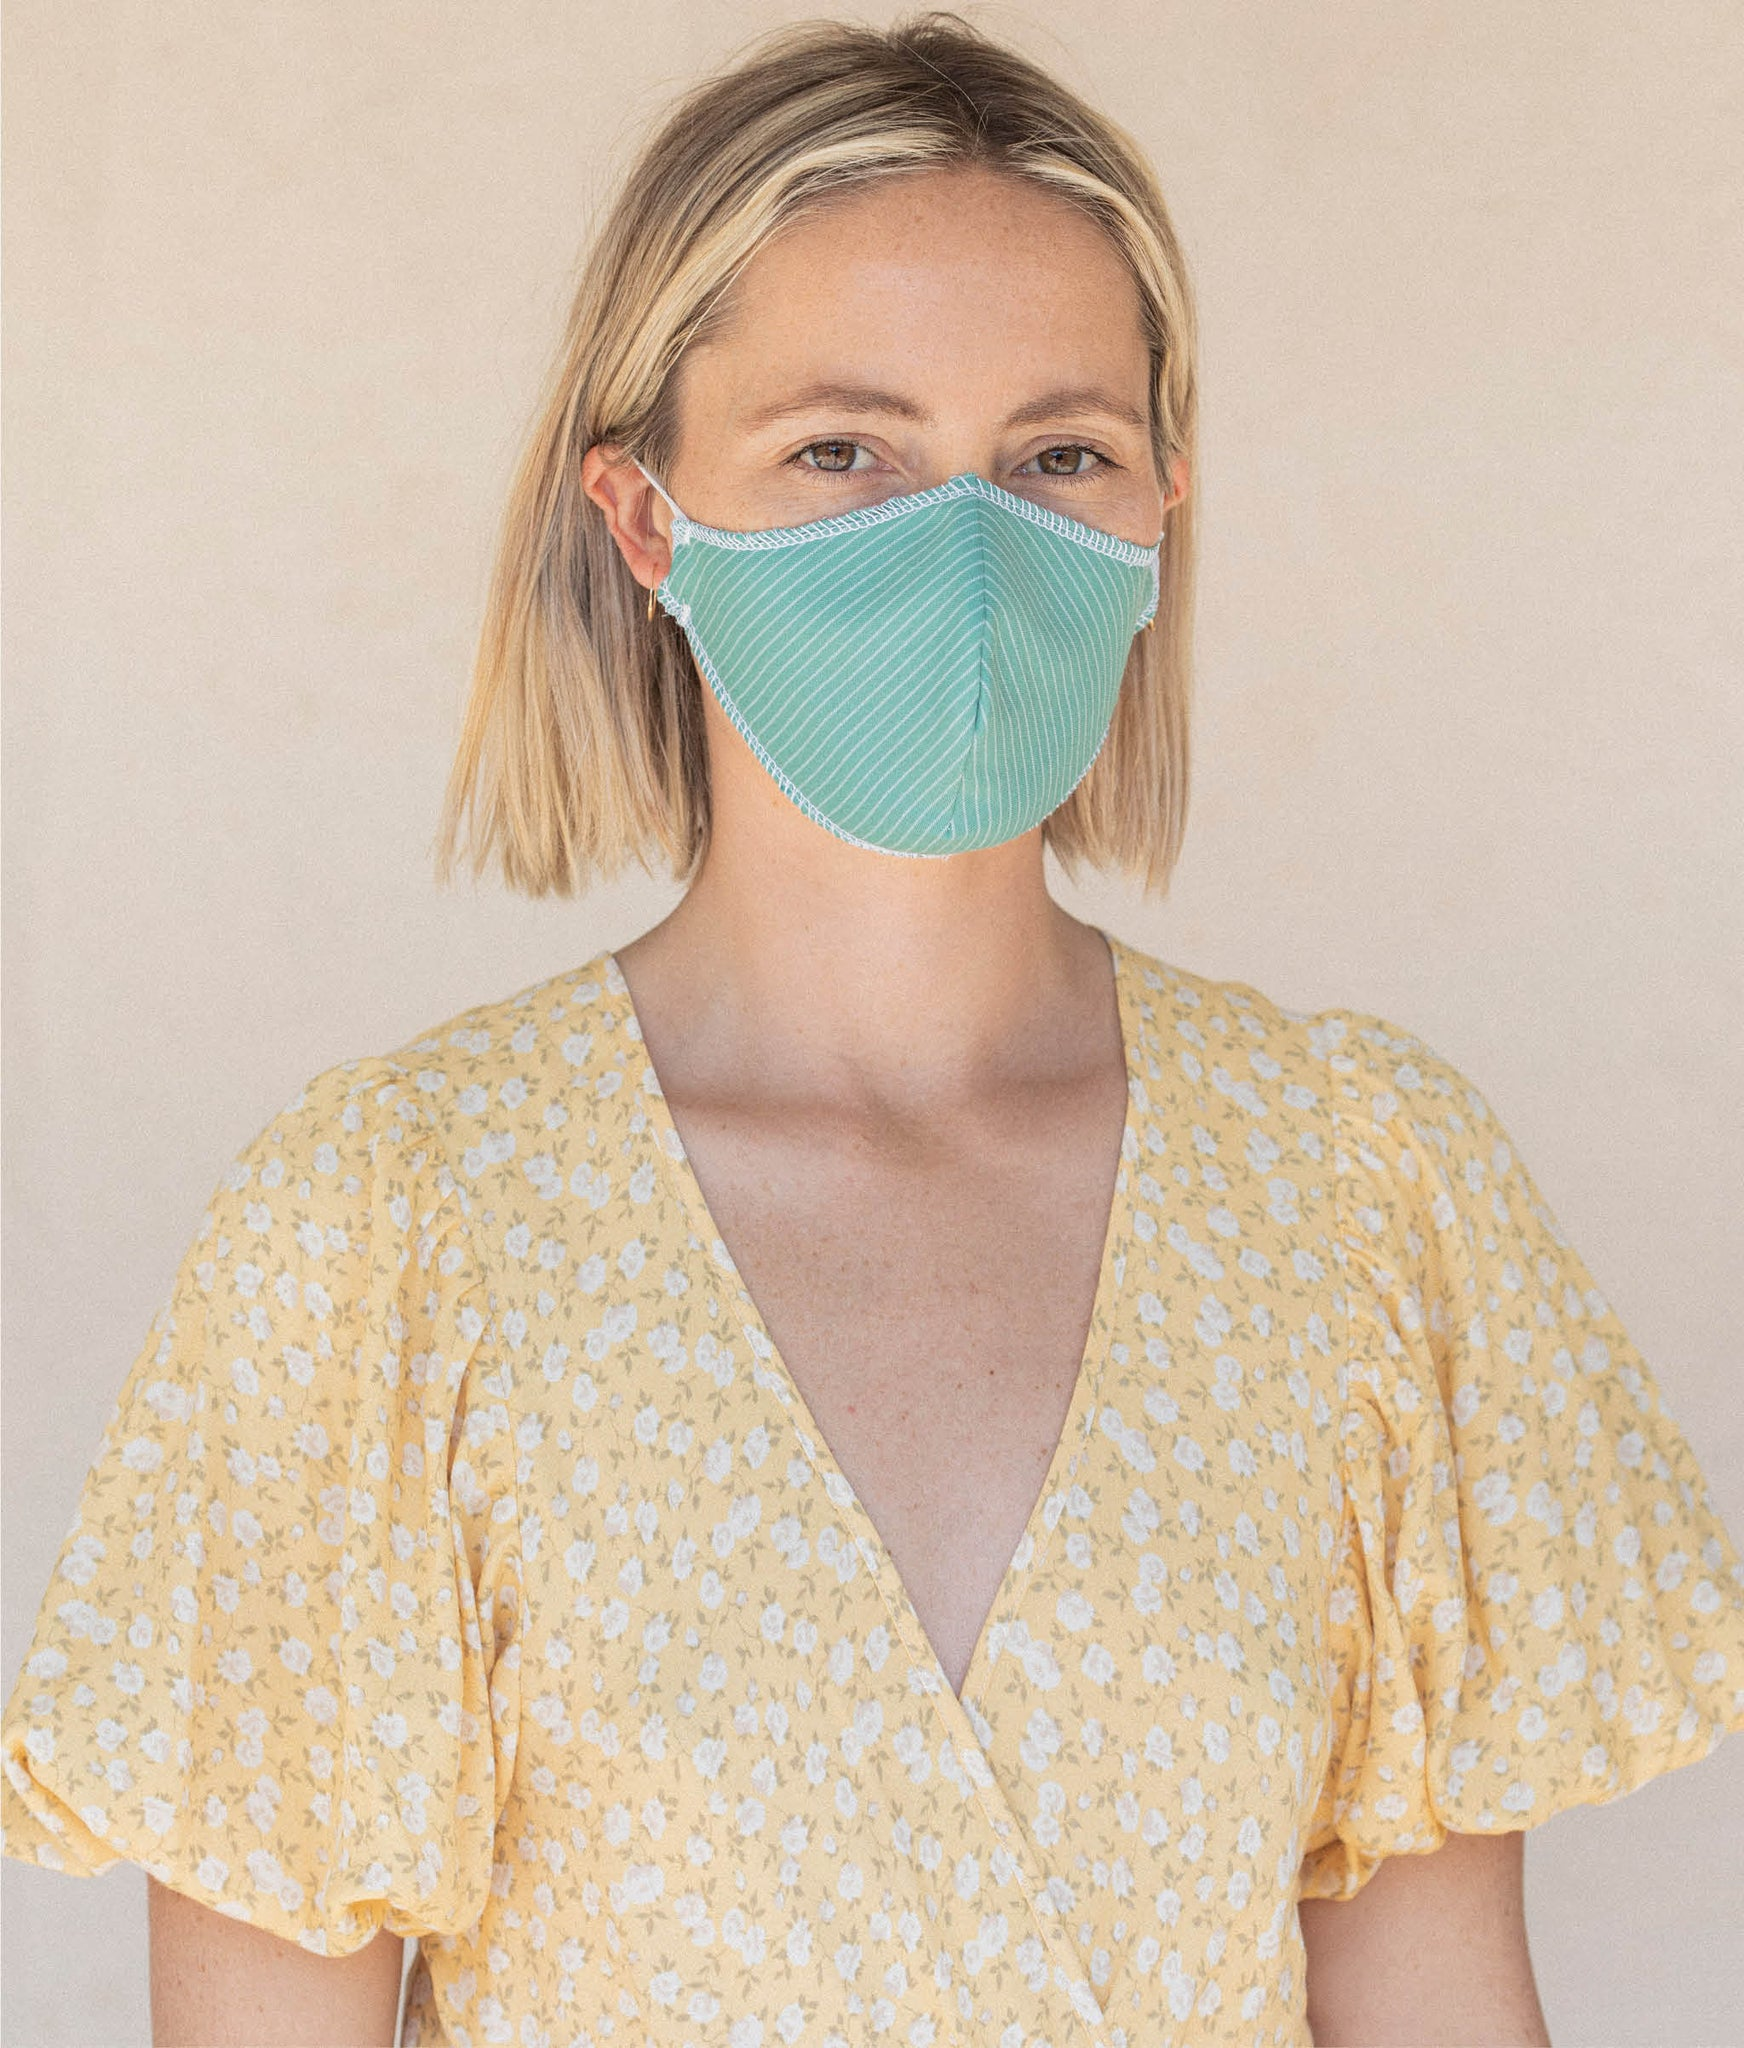 The Sustainable Mask | Plaids & Stripes 5-Pack